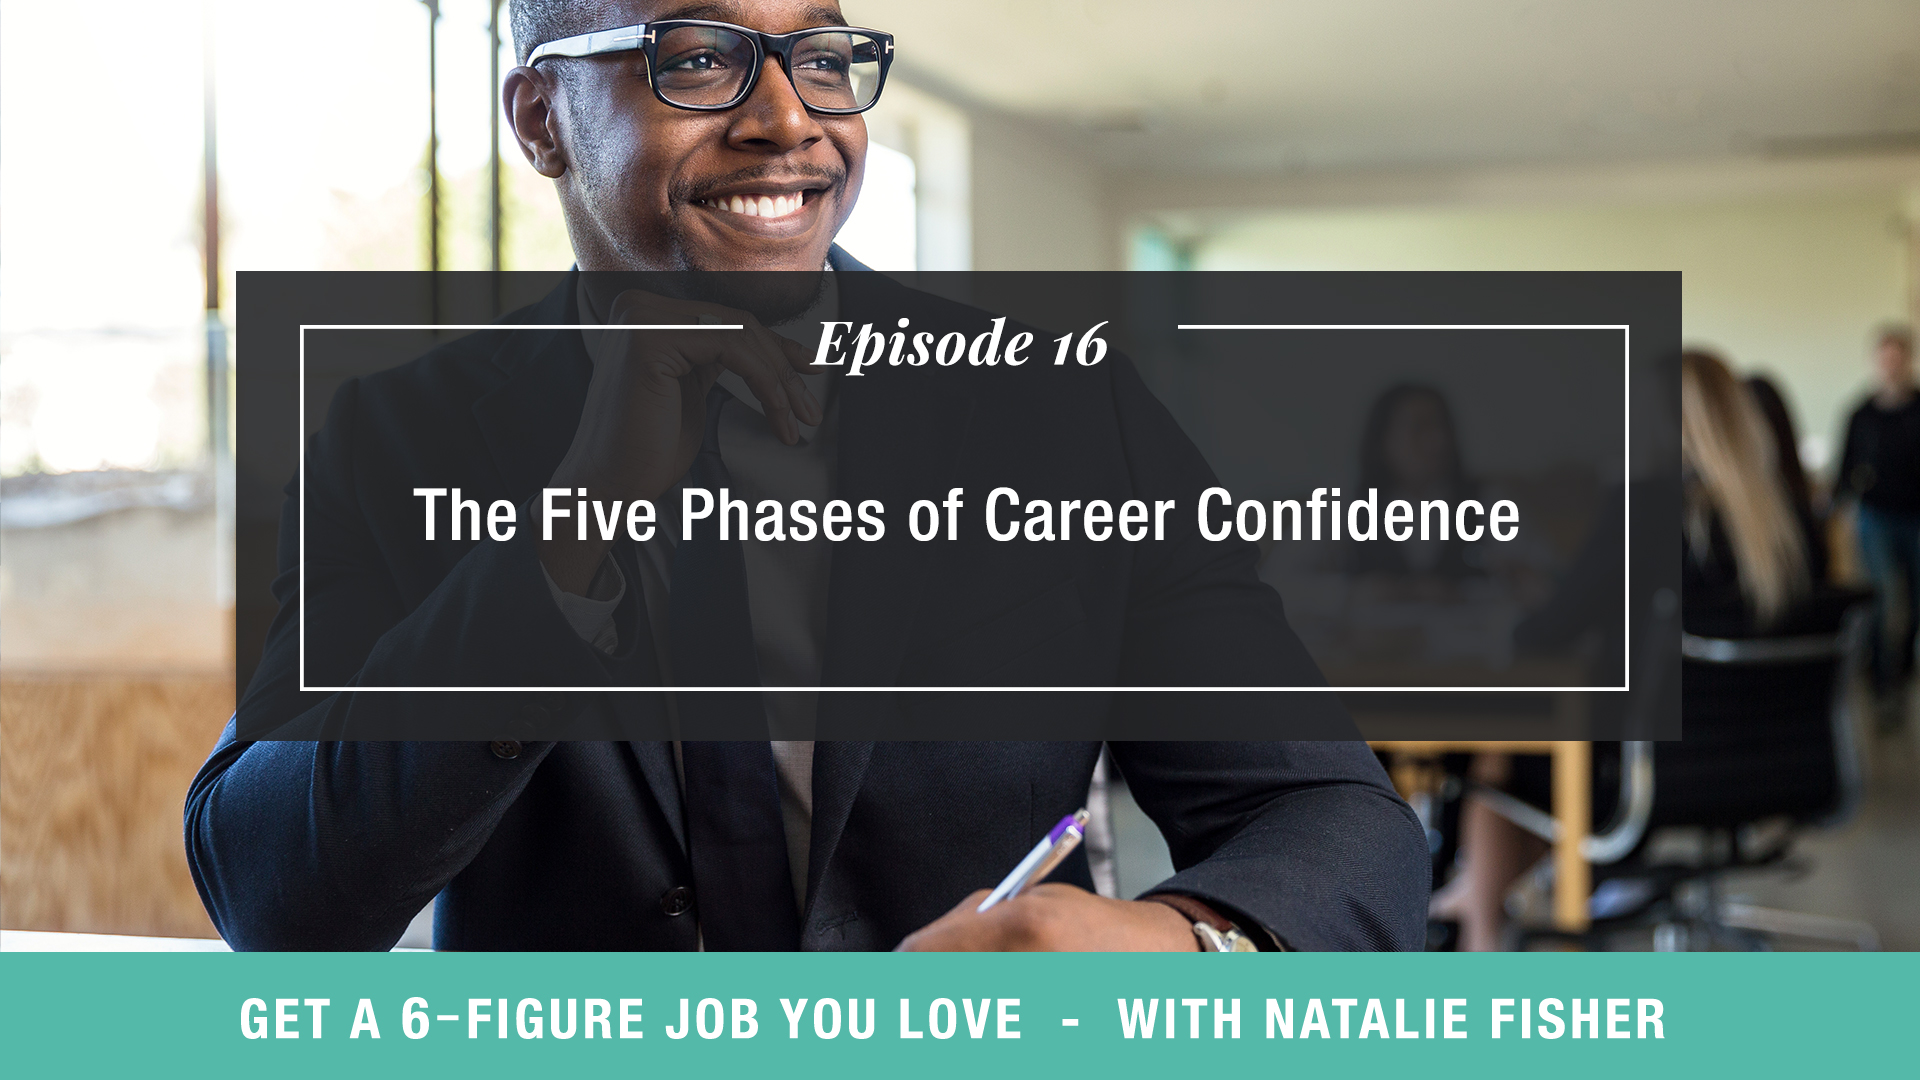 The Five Phases of Career Confidence